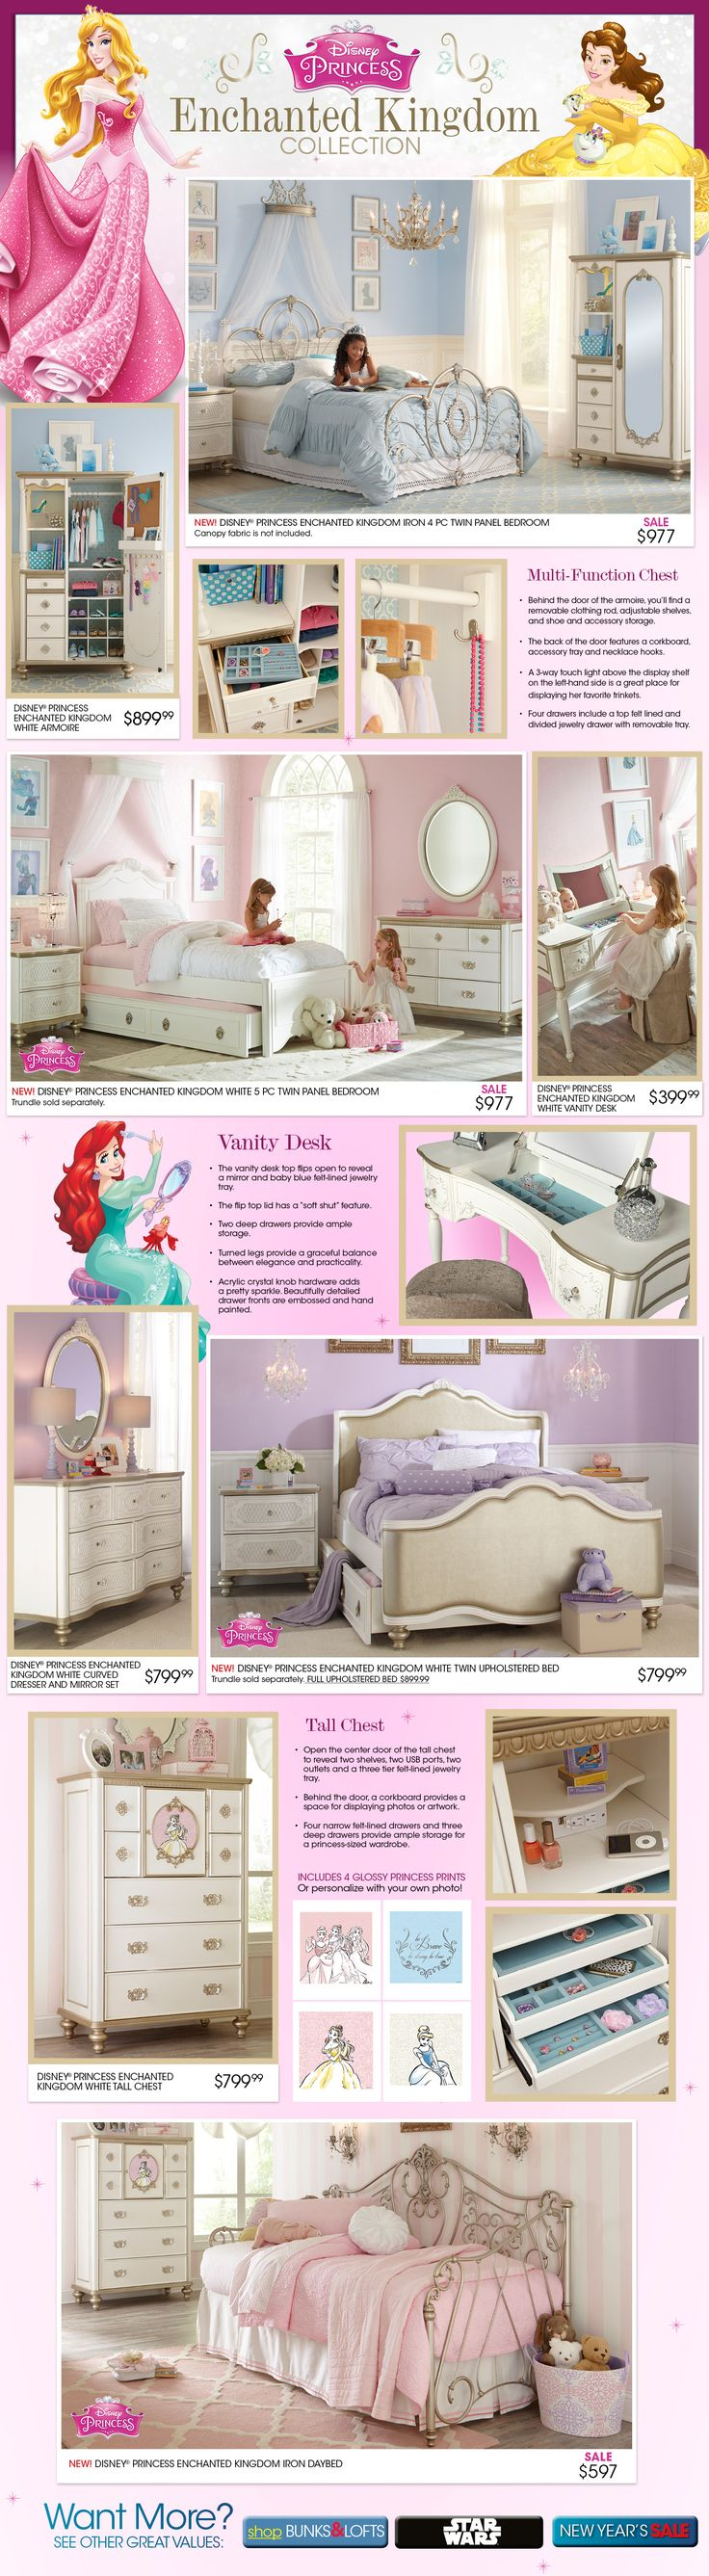 Buy kids furniture. Affordable kids bedroom furniture sets for boys and girls. Shop for children of all ages including baby.